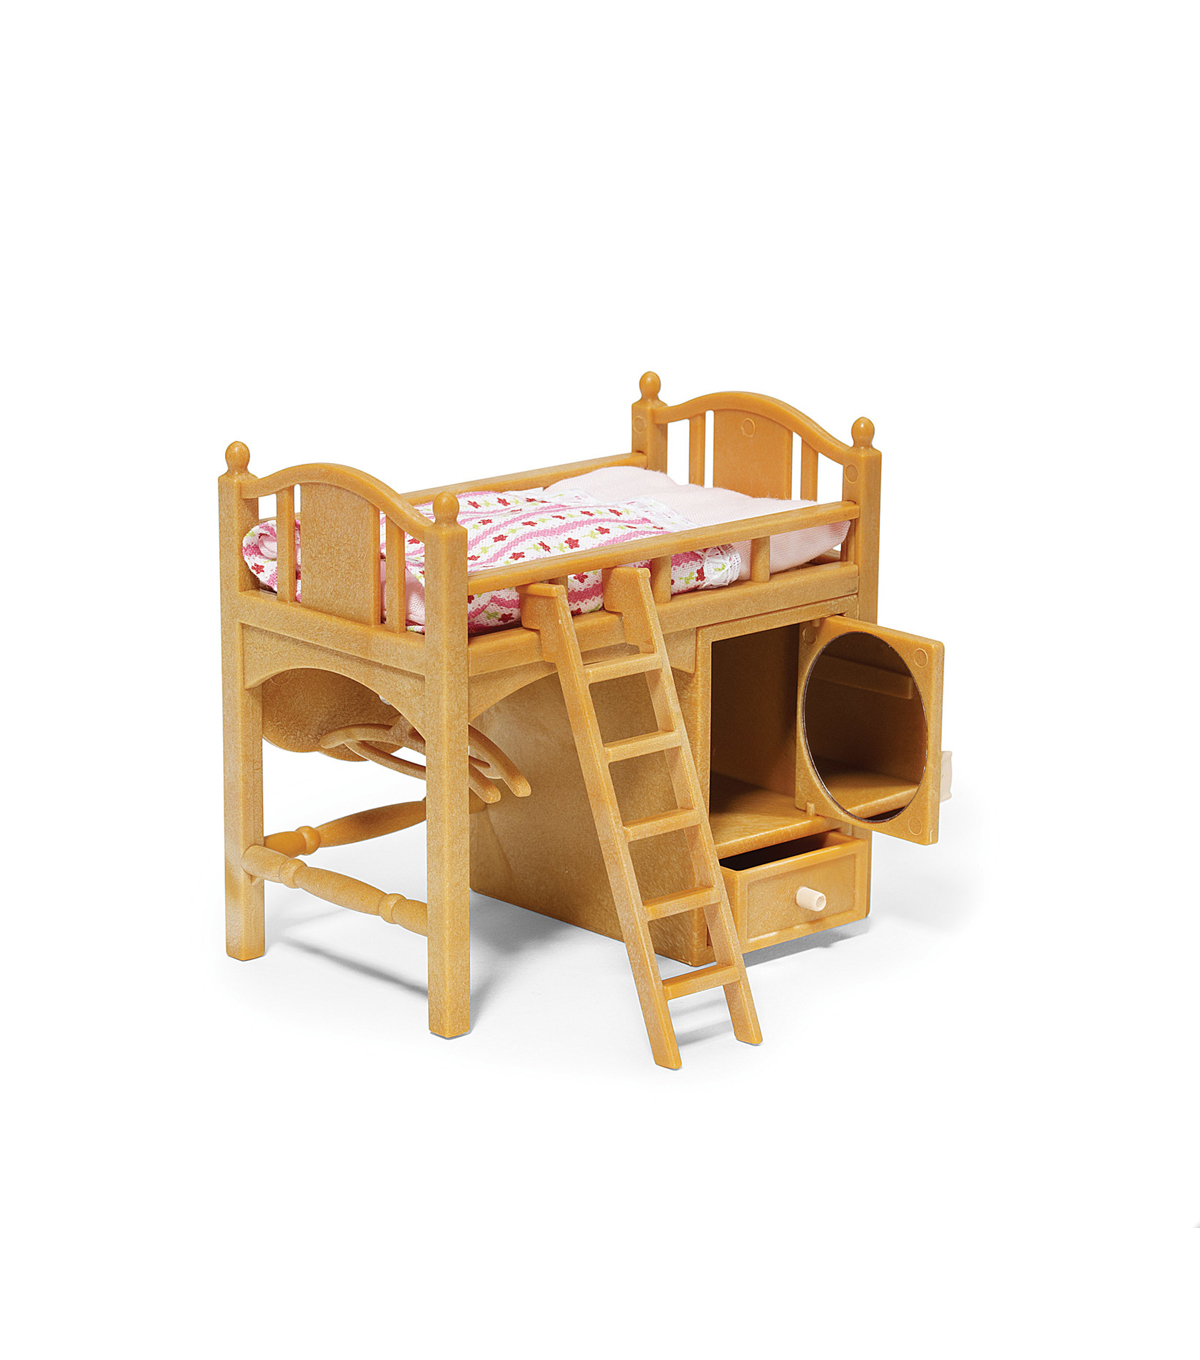 Calico Critters Sister\u0027s Loft Bed